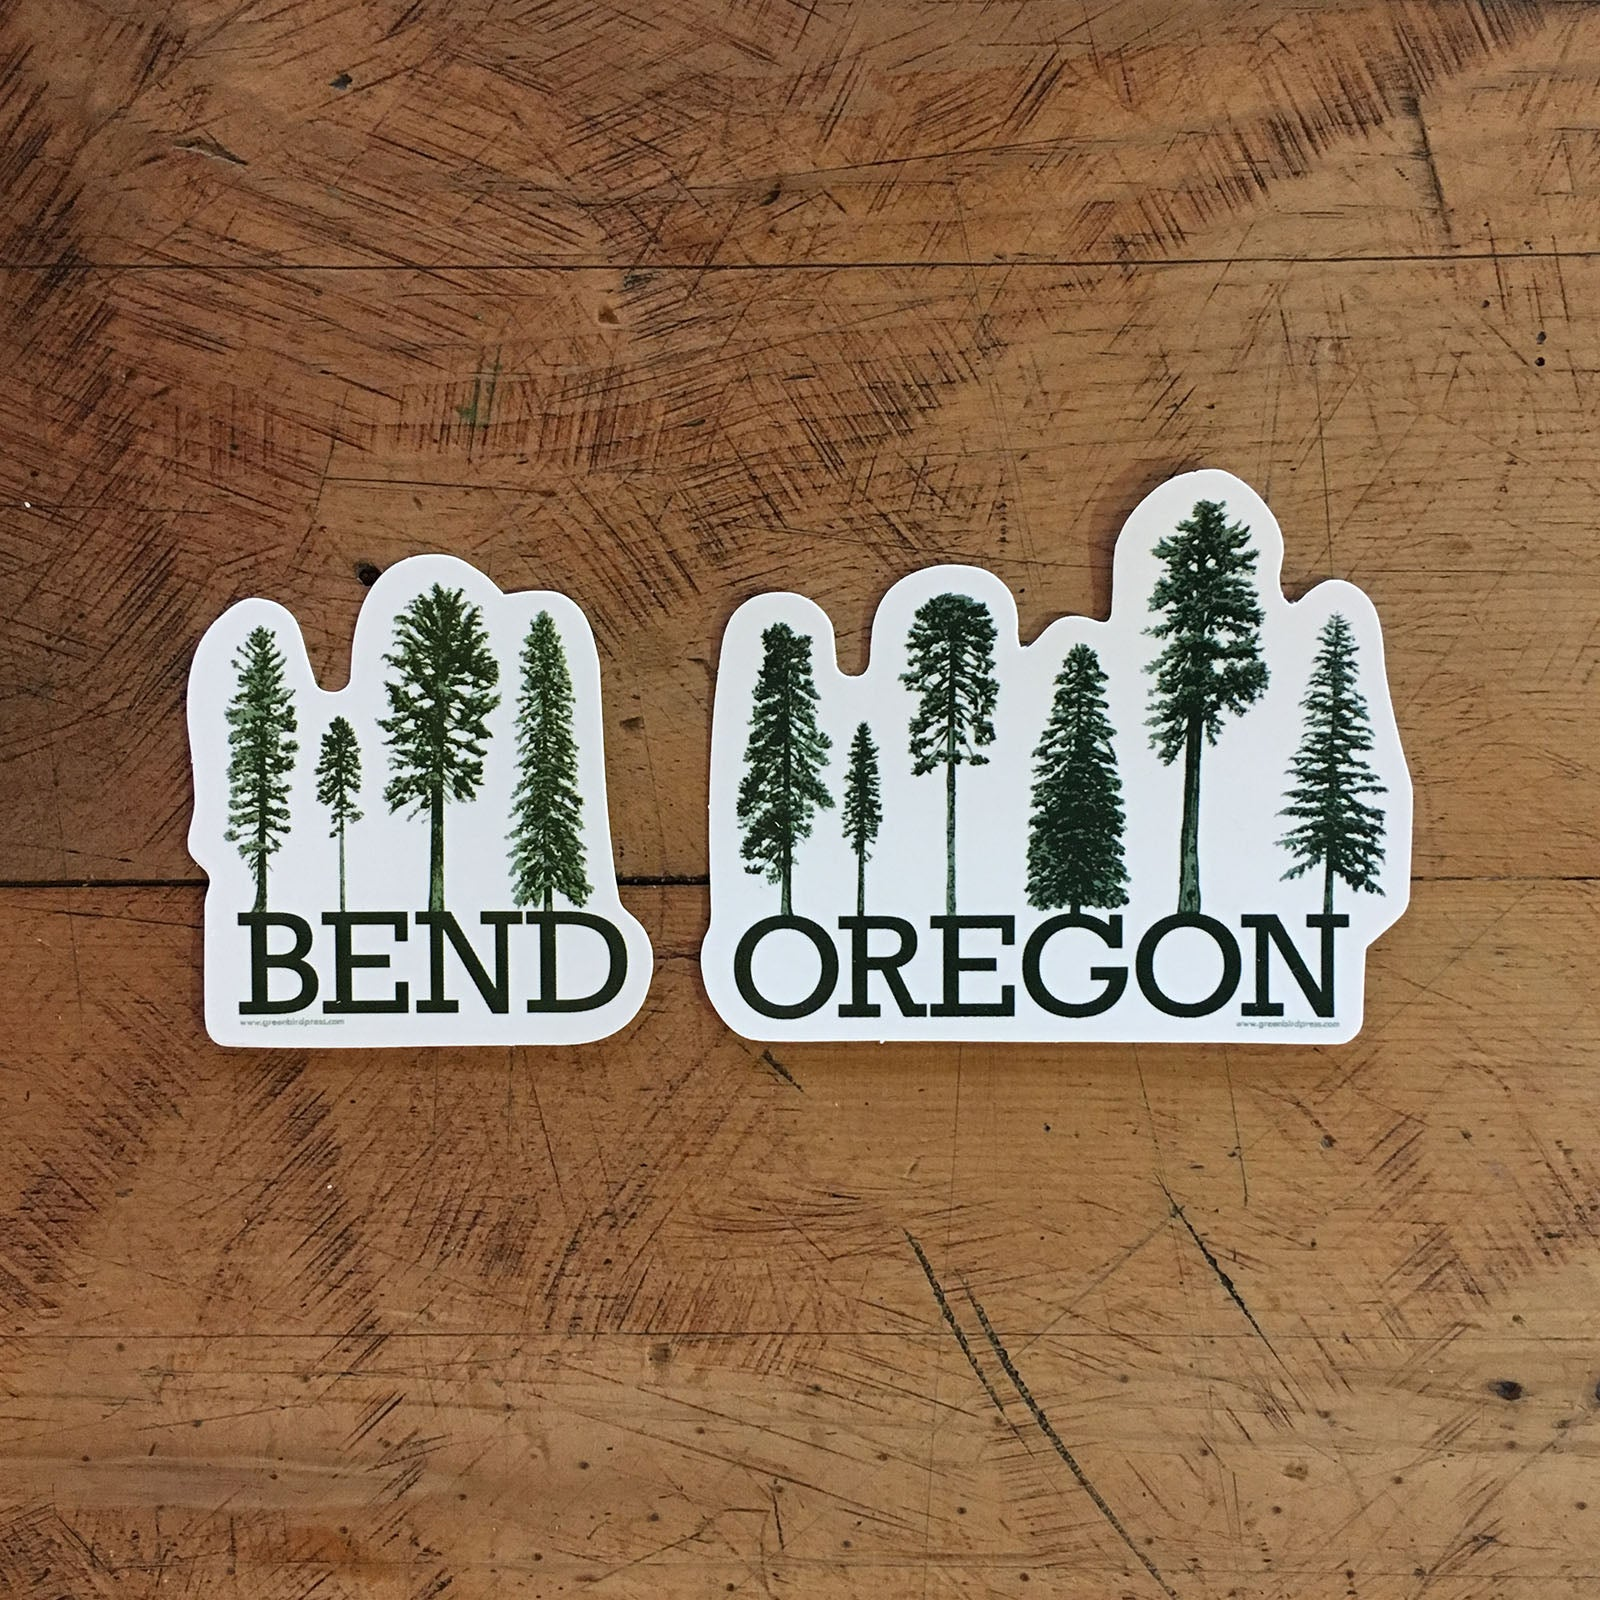 Bend & Oregon Conifer Tree Stickers